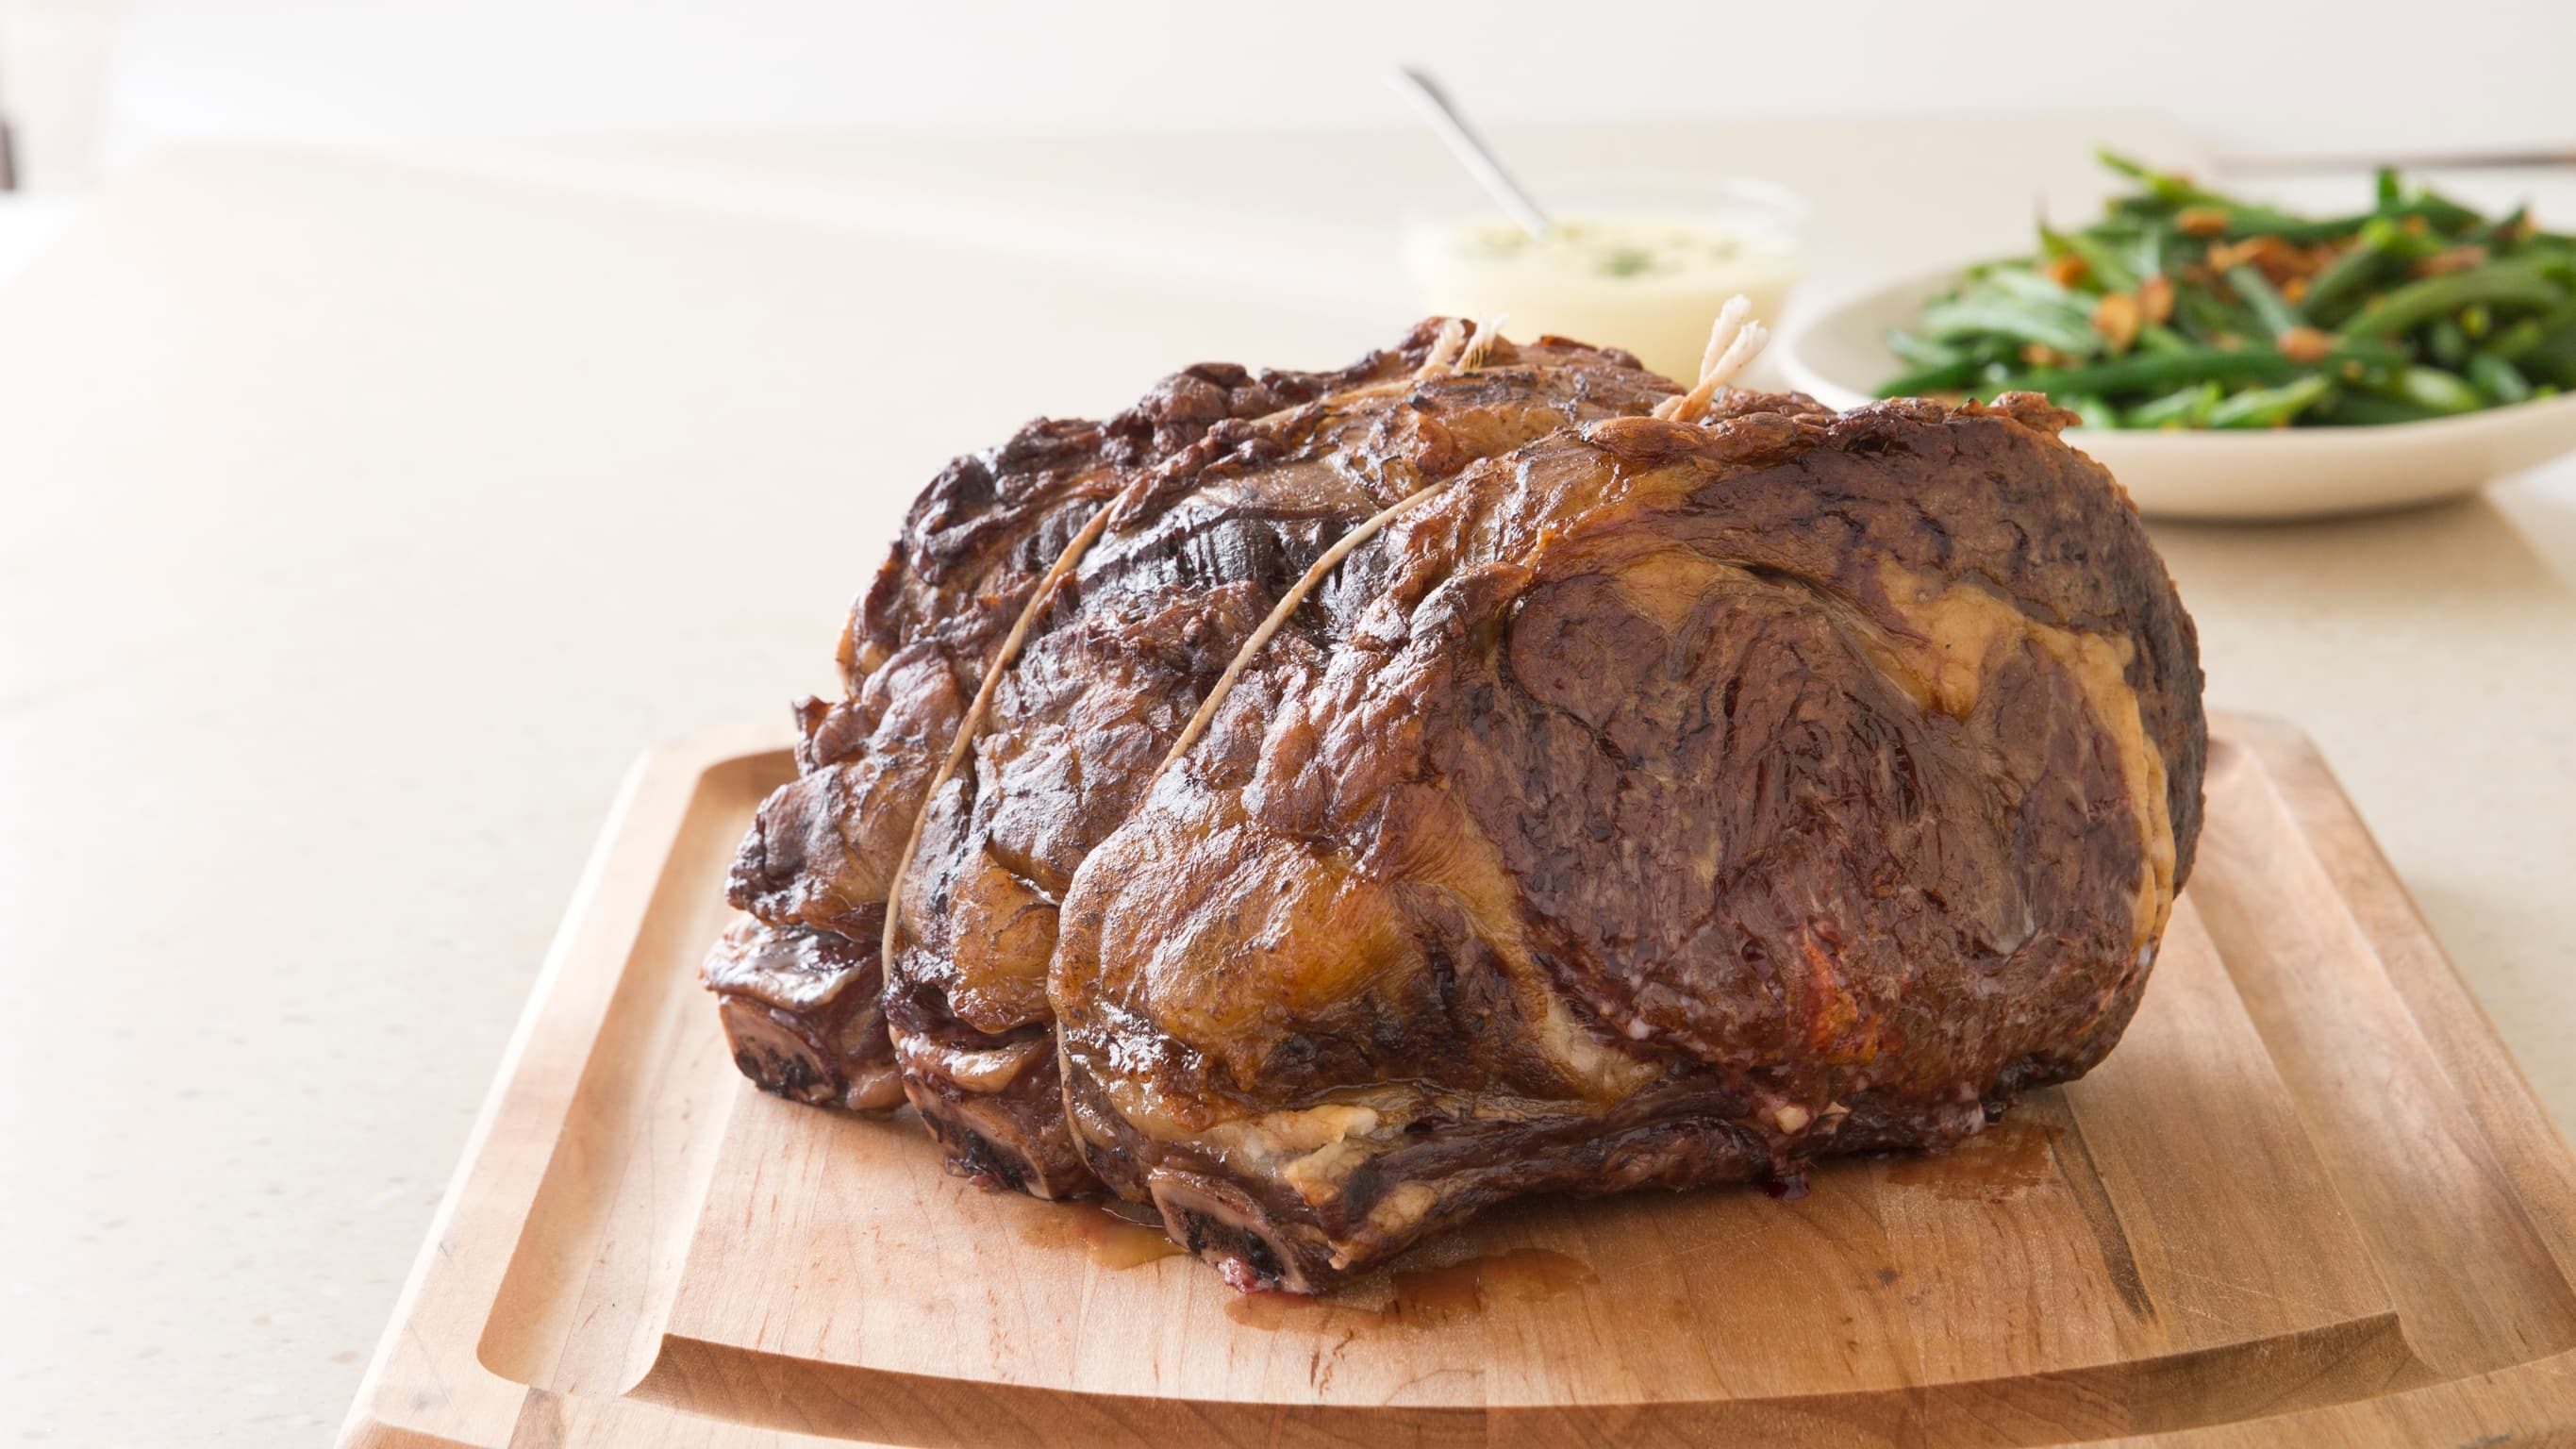 How To Buy And Cook Prime Rib